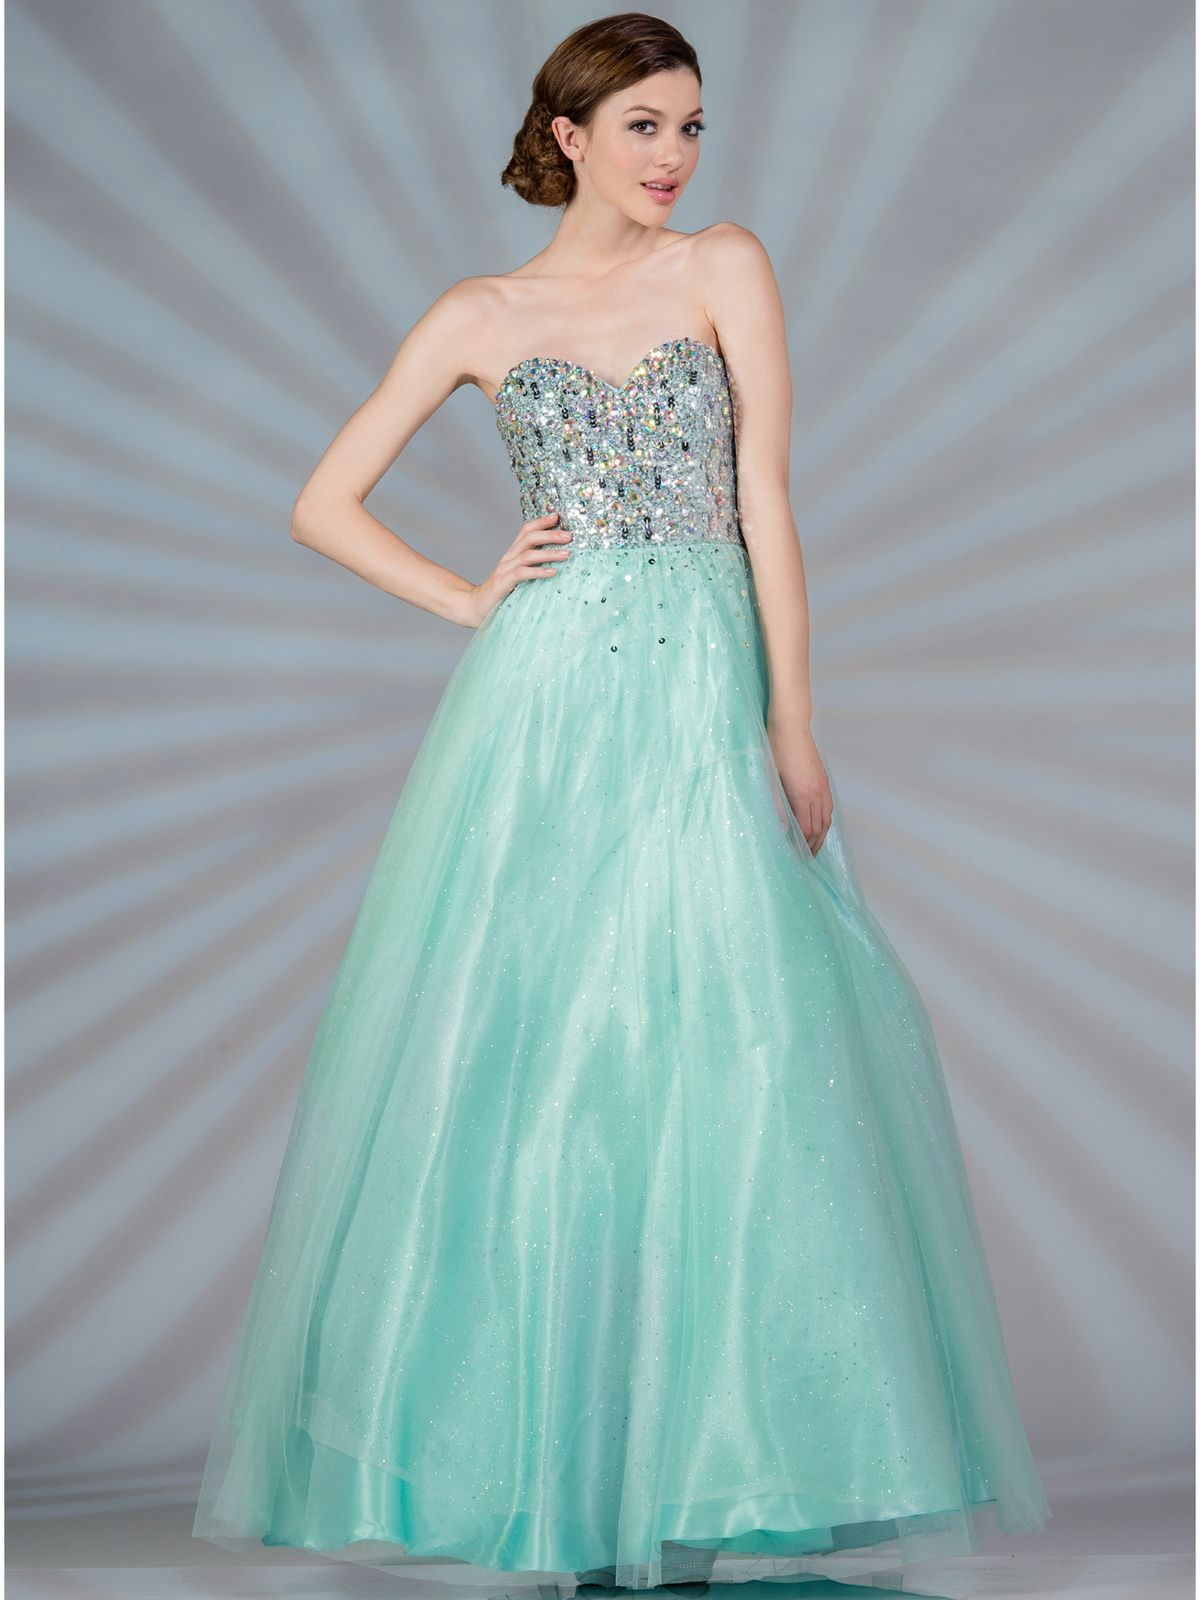 Mint Beaded Fairytale Prom Dress | Clothes | Pinterest | Mint prom ...